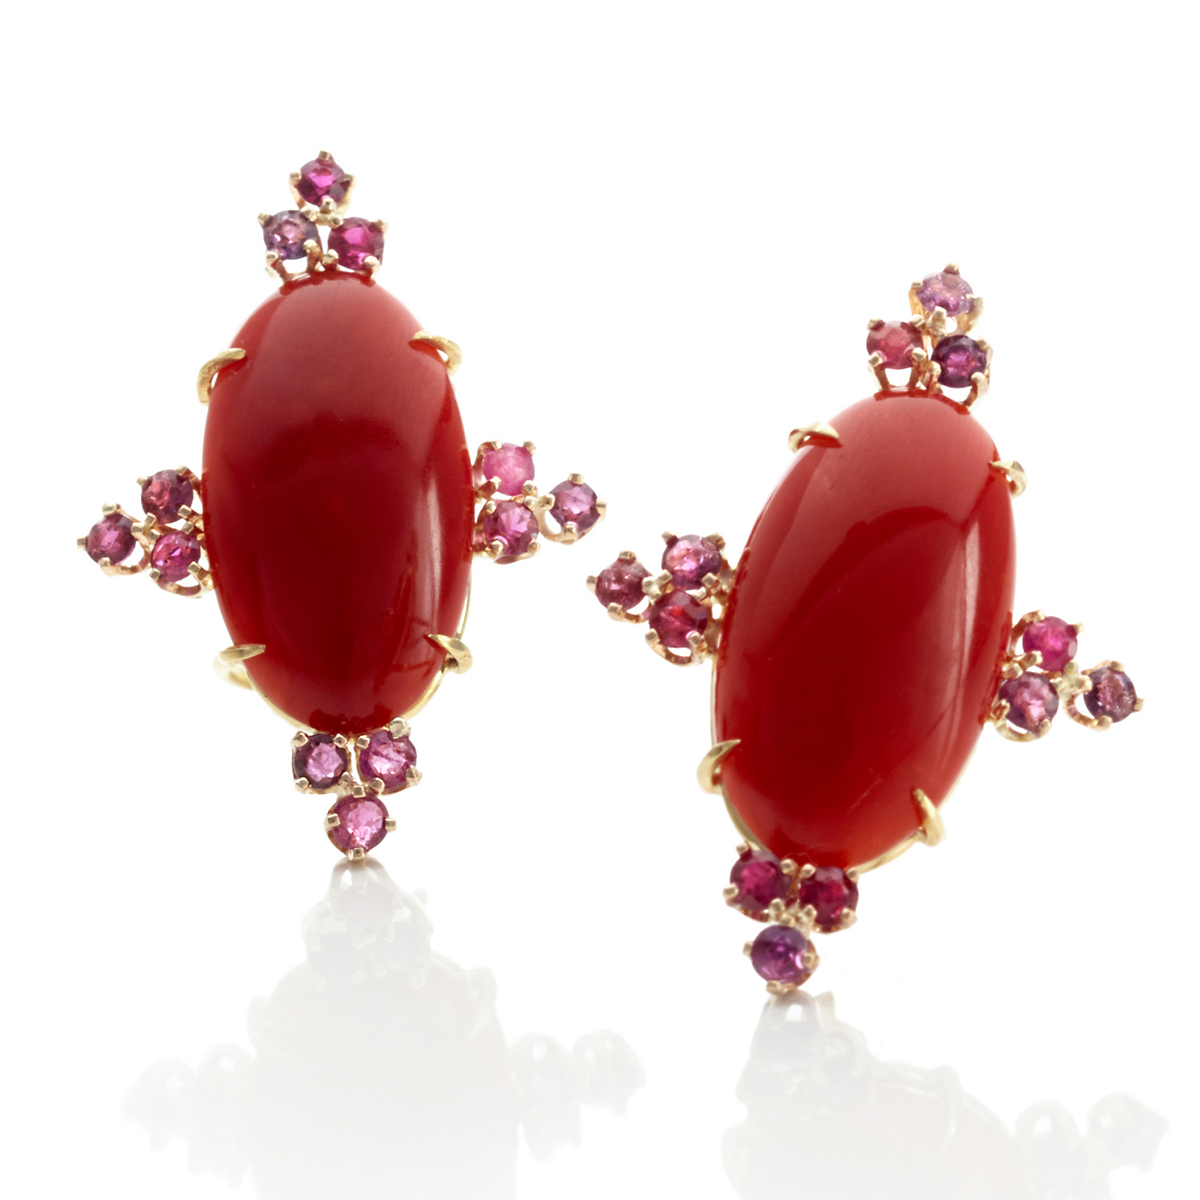 Russell Trusso Coral & Ruby Earrings